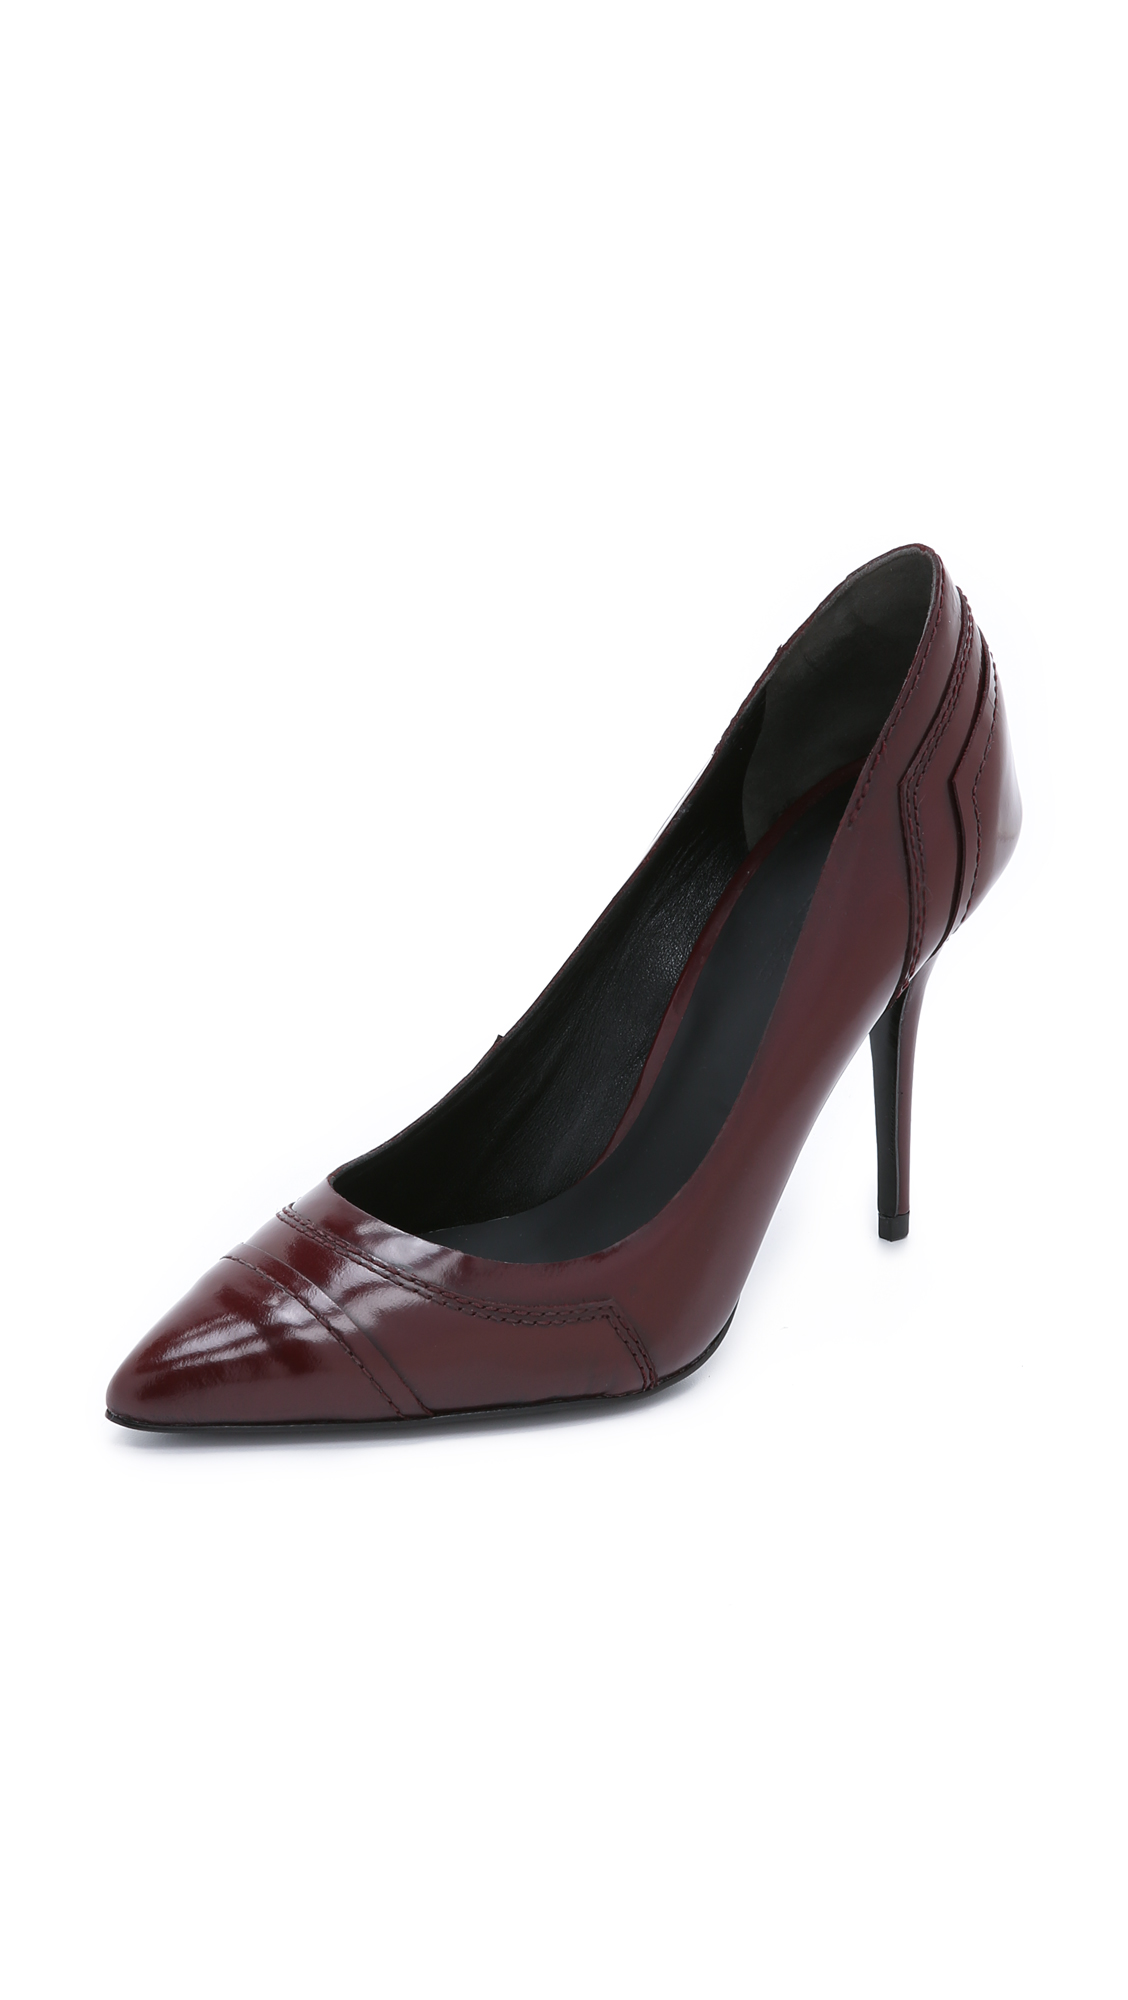 Alexander Wang Paulina Pumps In Oxblood